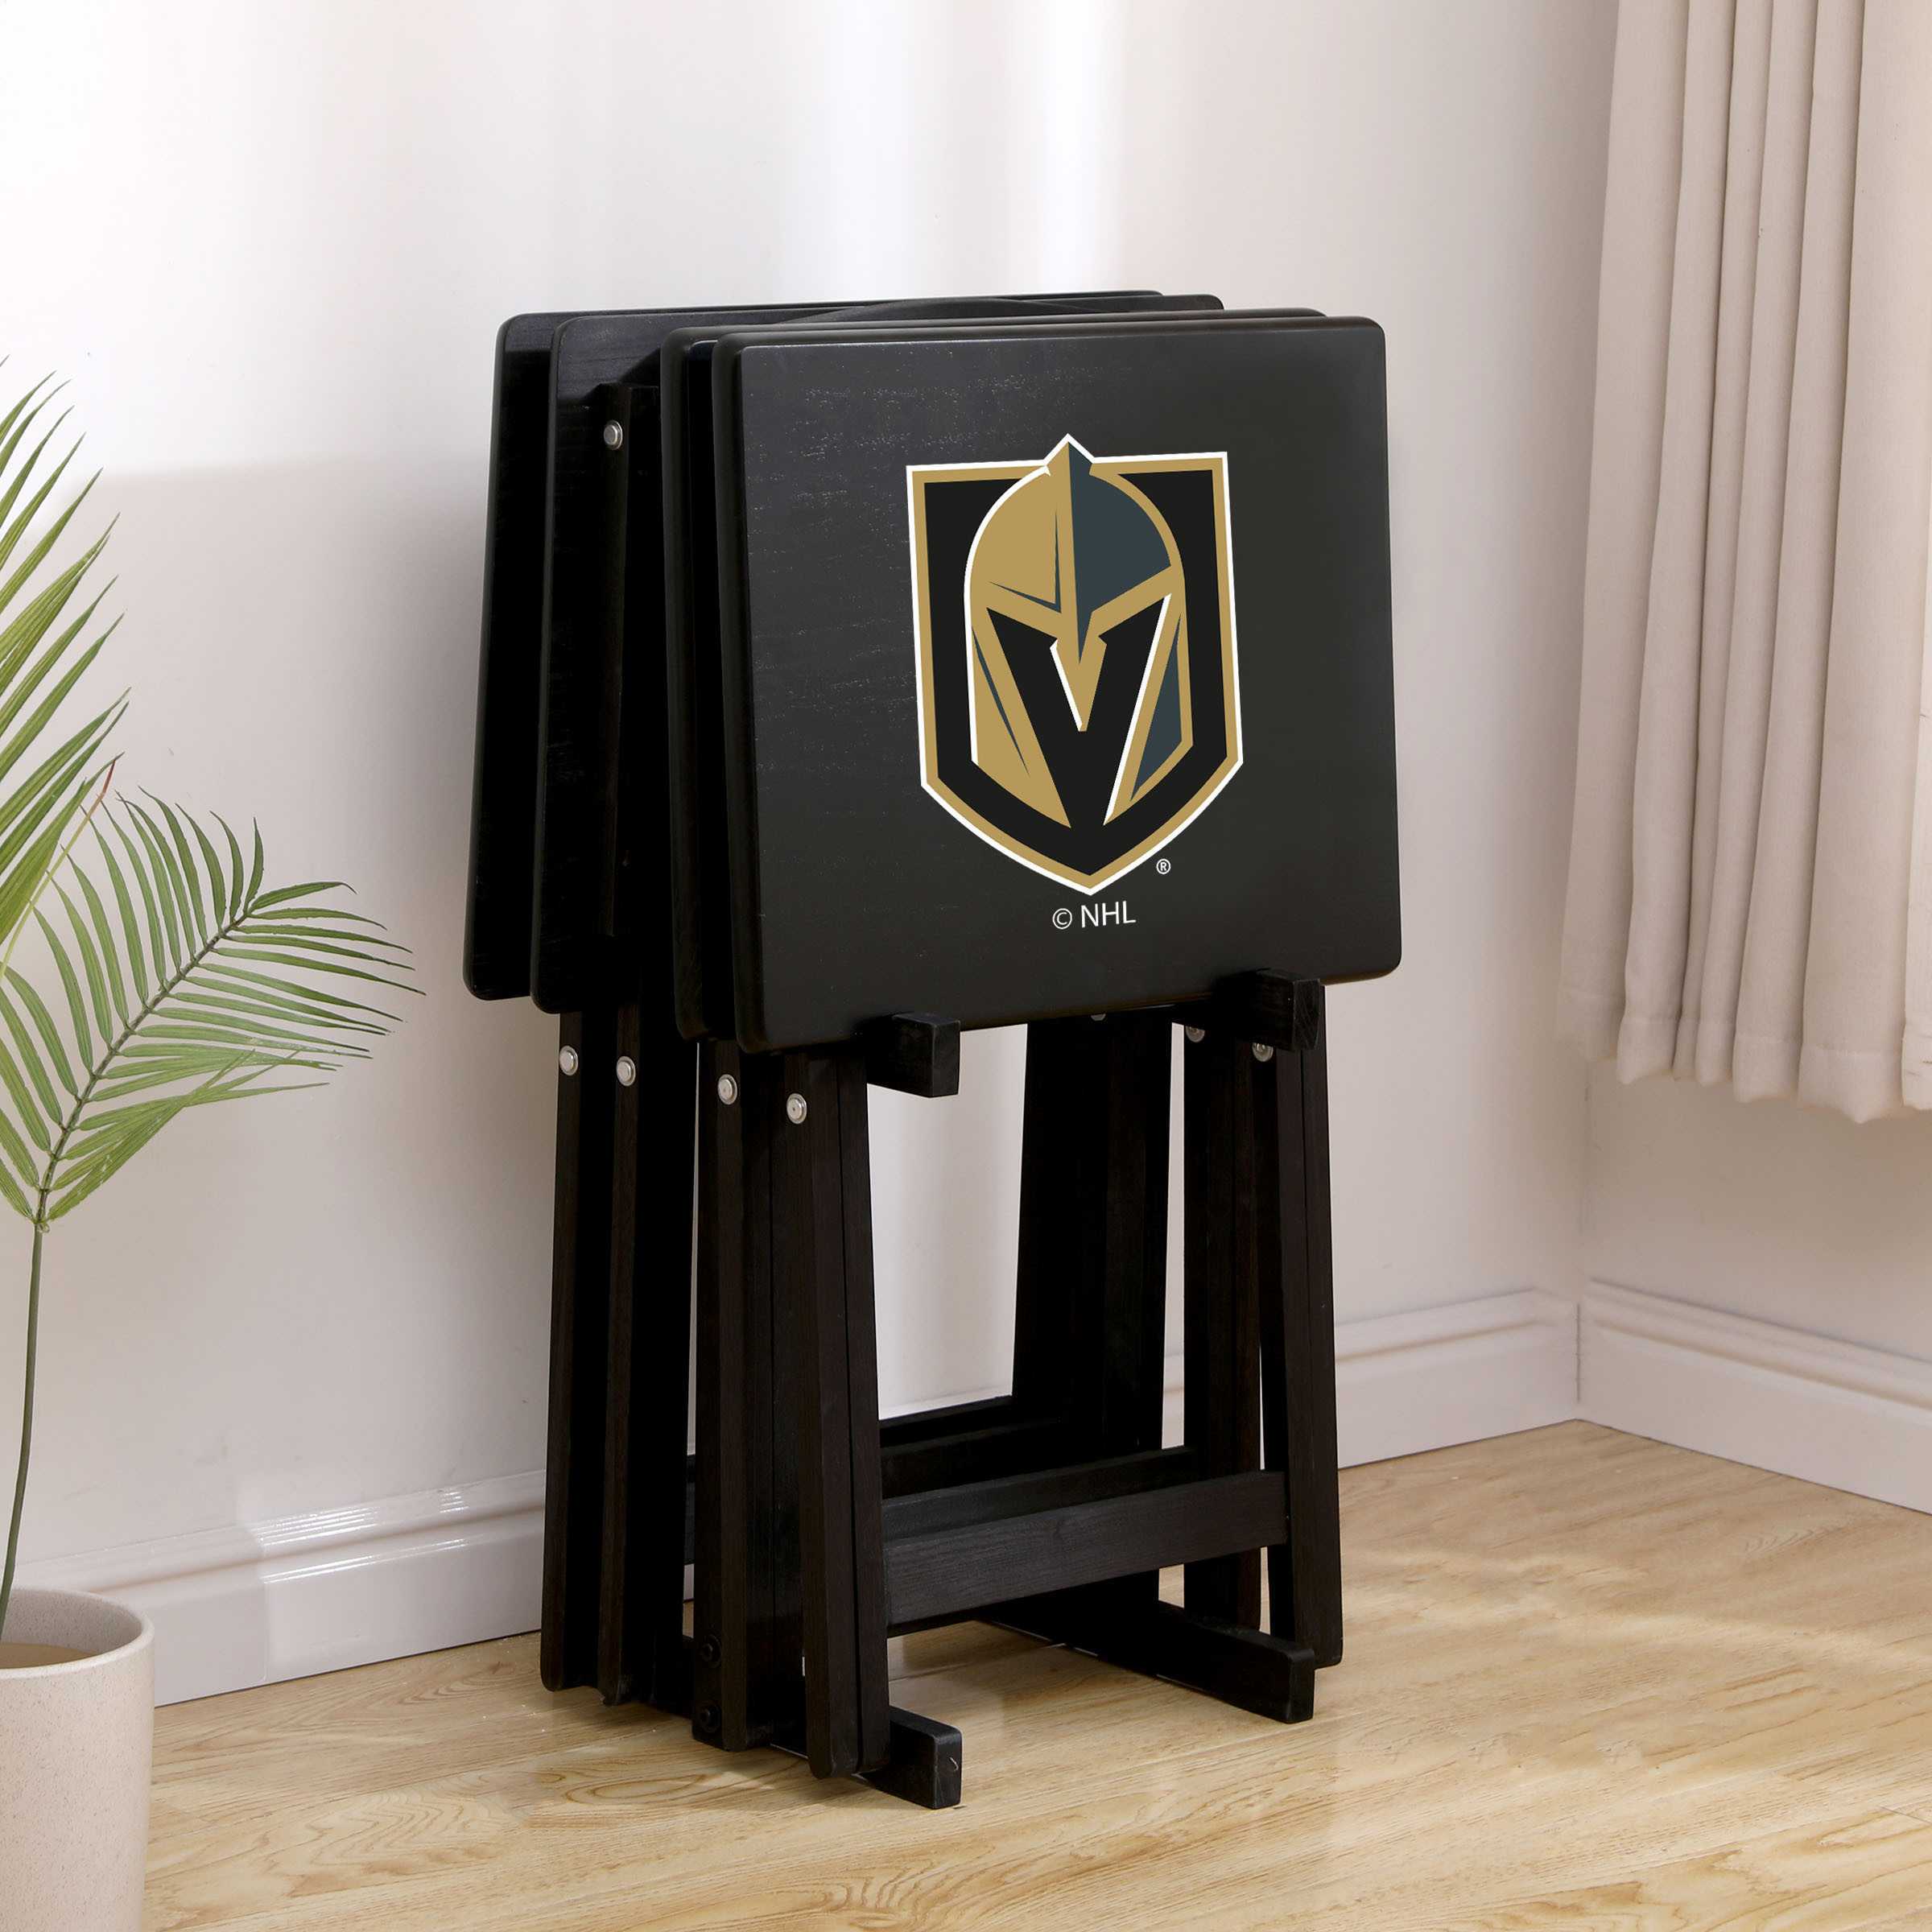 GOLDEN KNIGHTS TV TRAYS W/ STAND